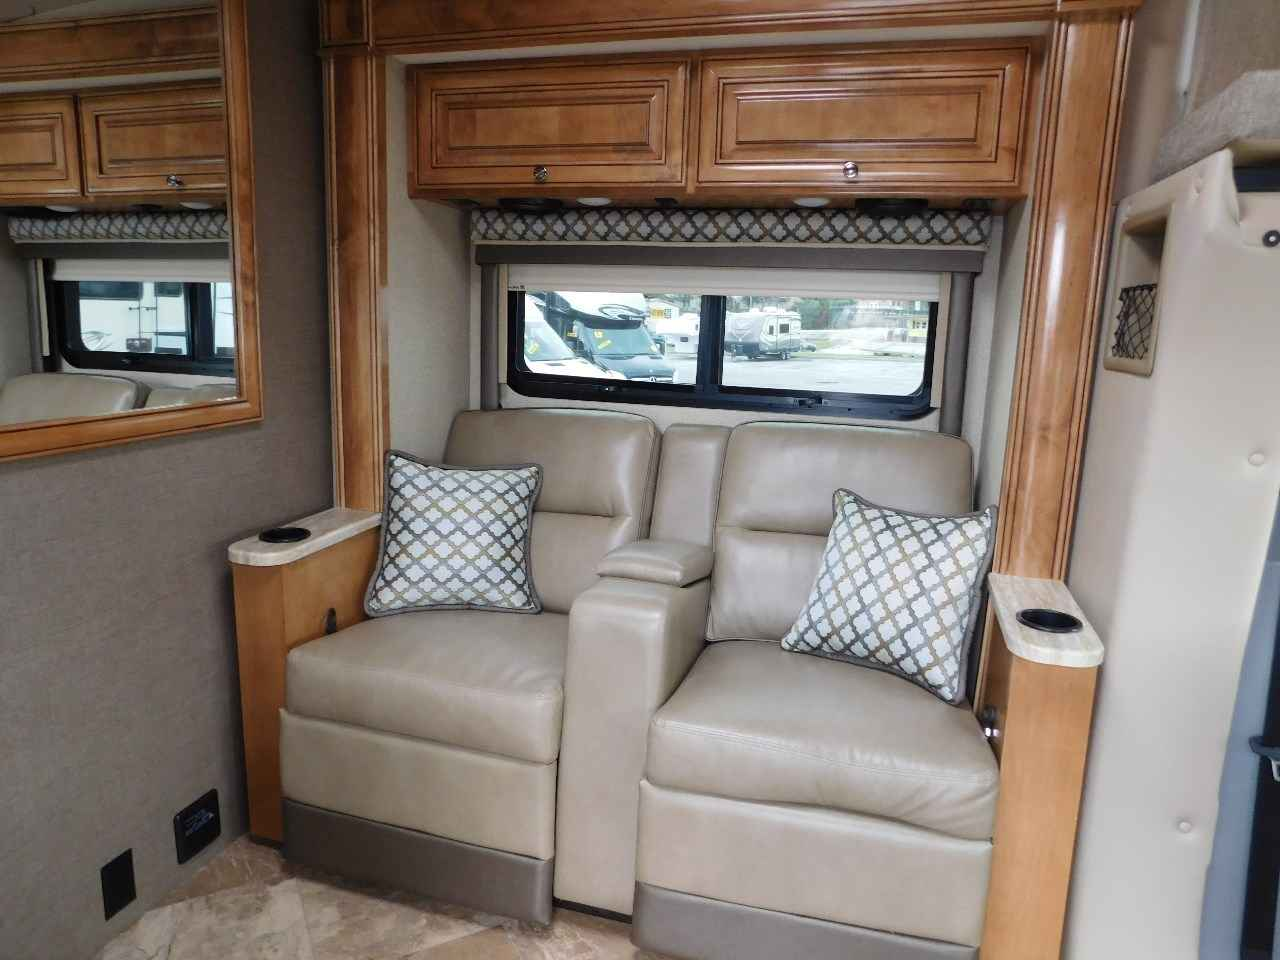 2017 New Thor Motor Coach Citation 24st Diesel Slide Out